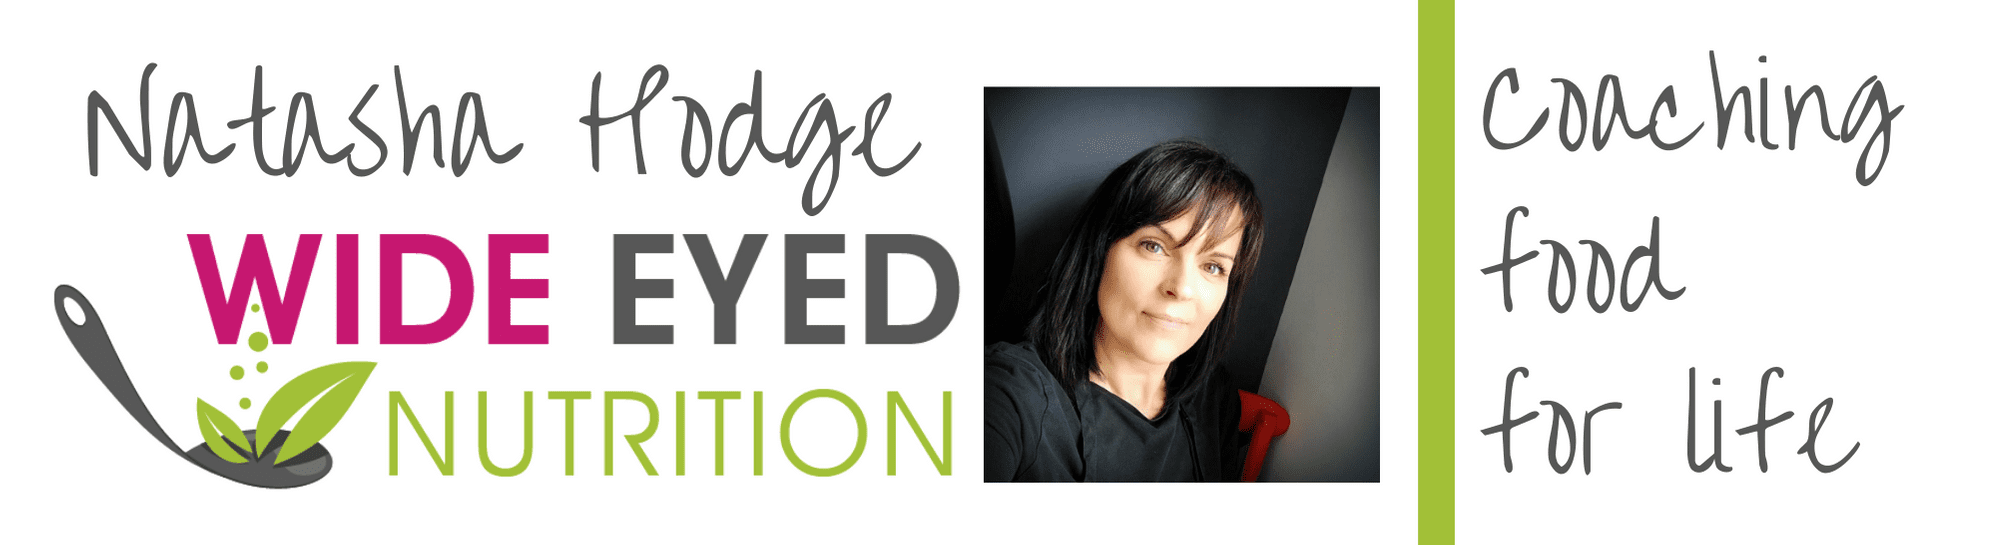 natasha hodge and wide eyed nutrition logo with a leaf on a spoon and a headshot of natasha with the [hrase coaching food for life